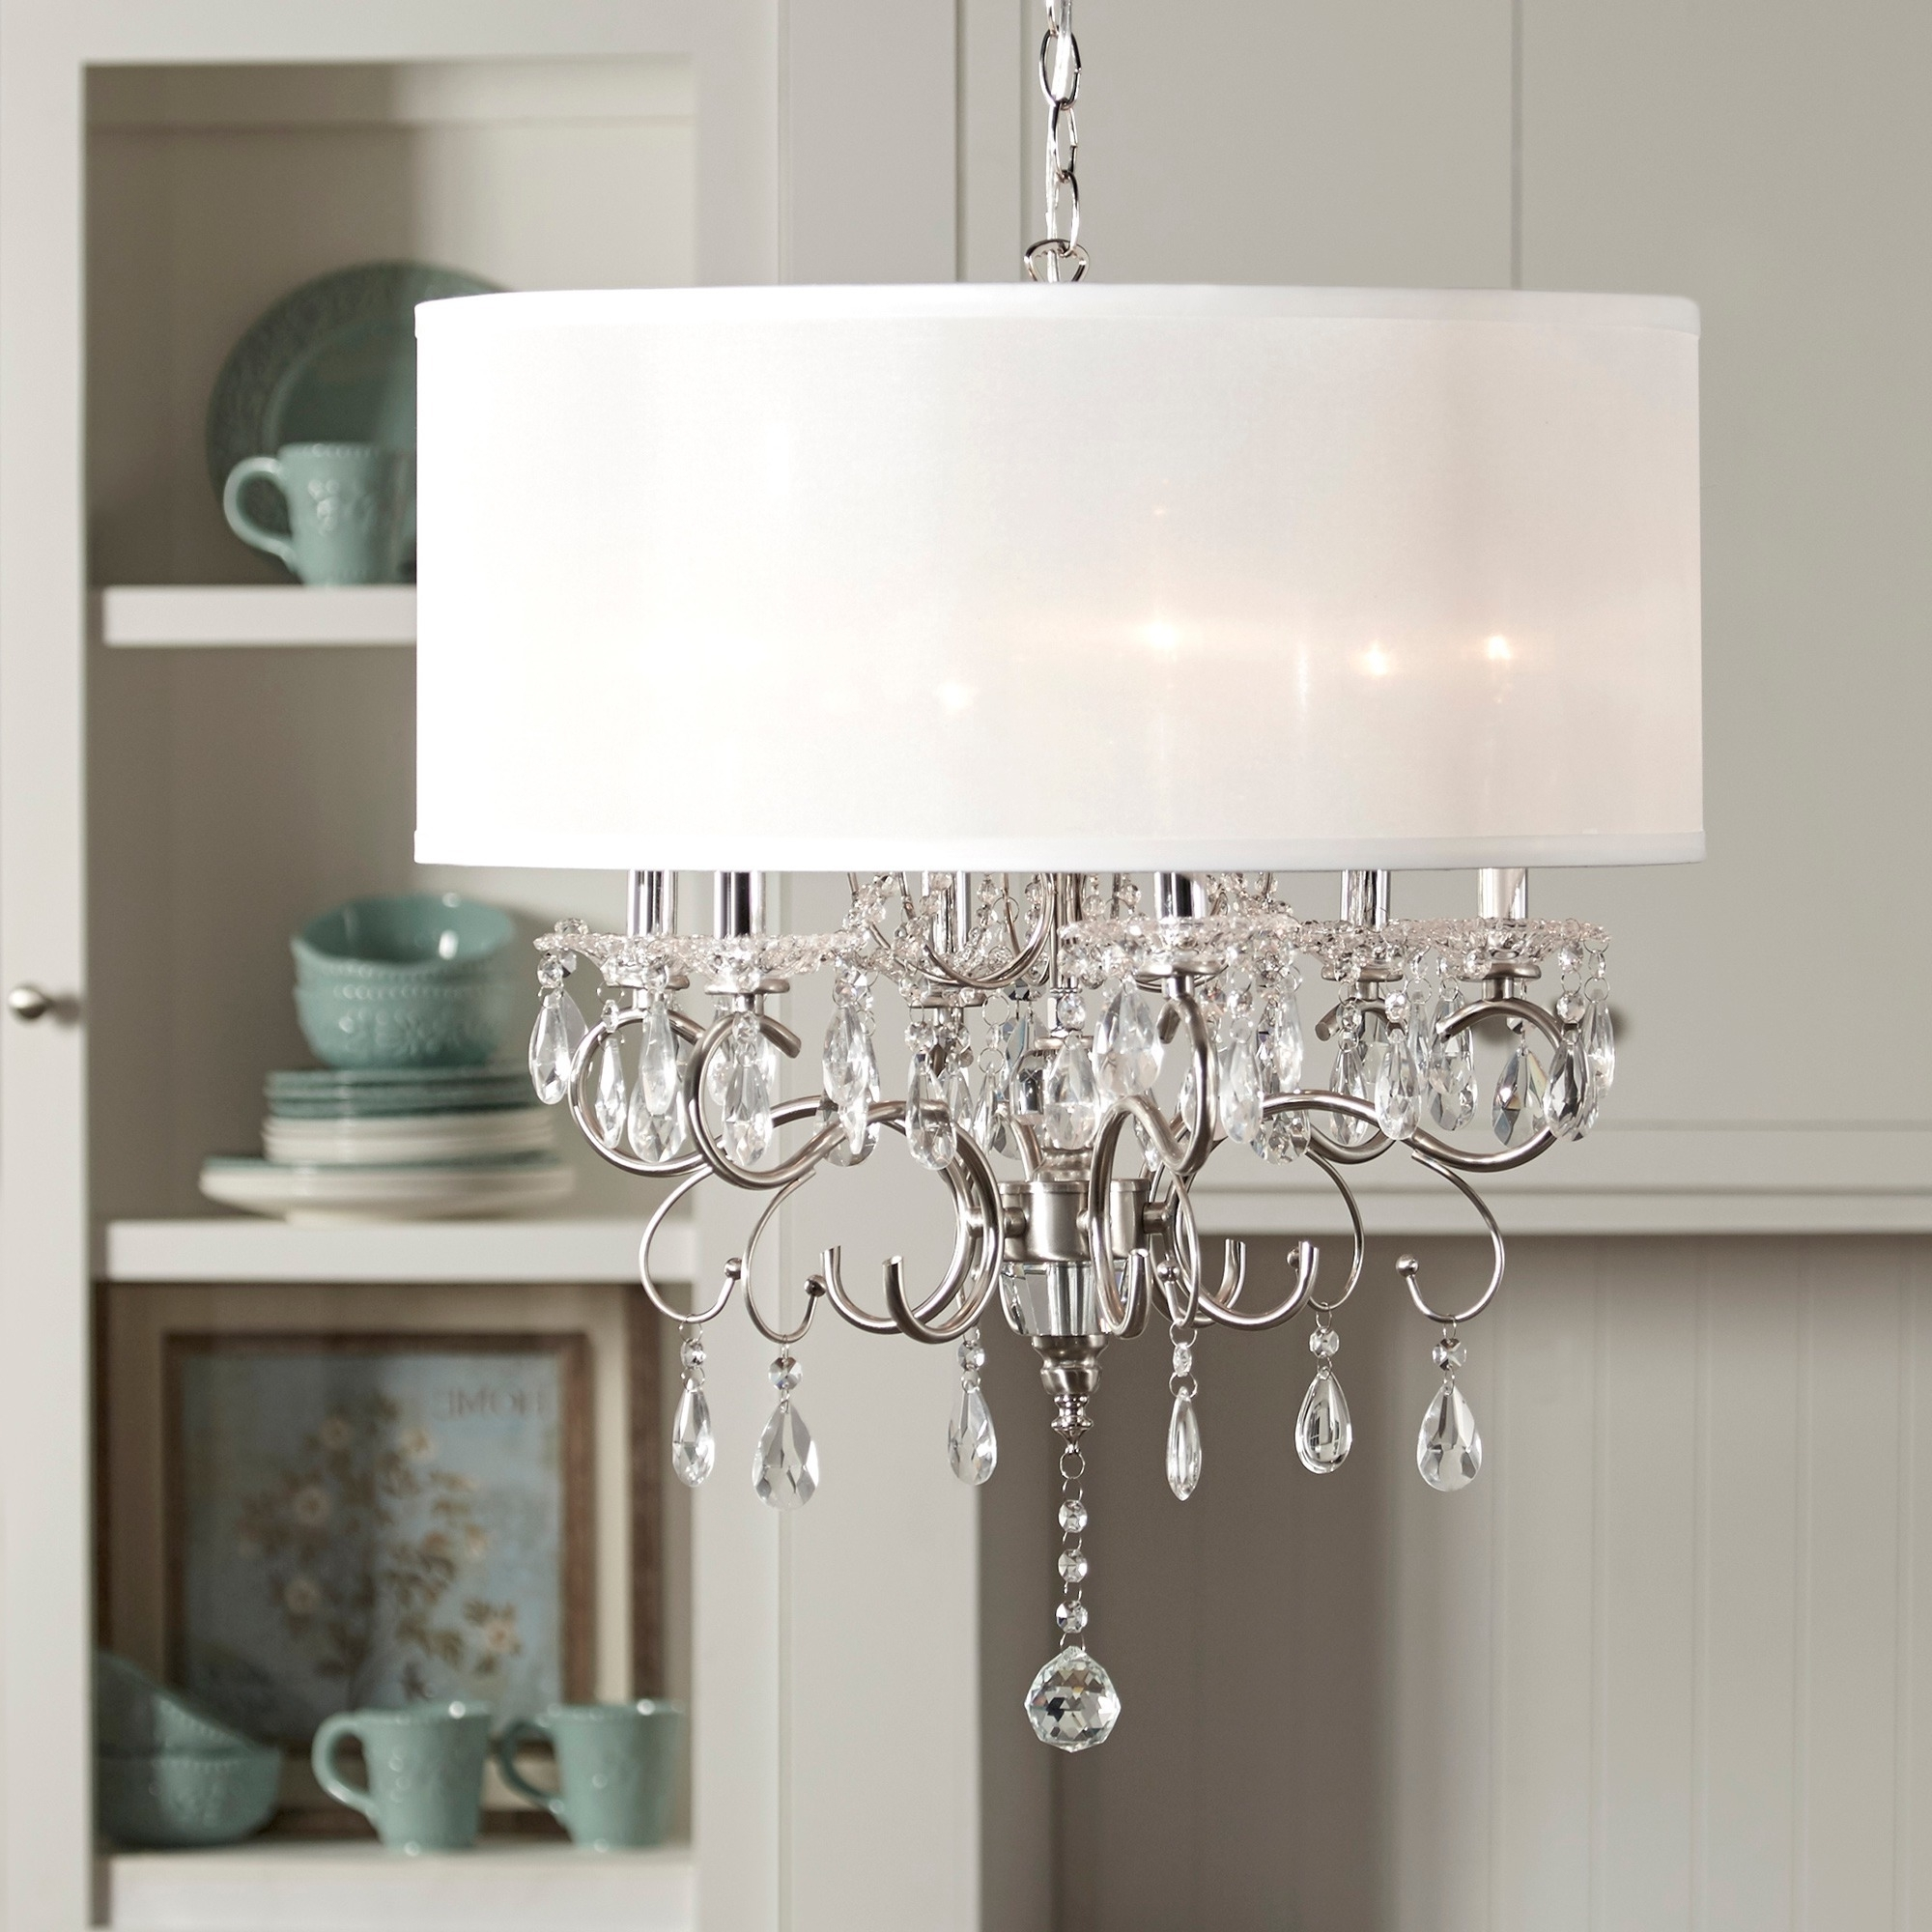 Popular Wall Mounted Chandelier Lighting Regarding Lighting: Crystal Drum Light Pendant With Wall Mount Shelves For (Gallery 11 of 15)